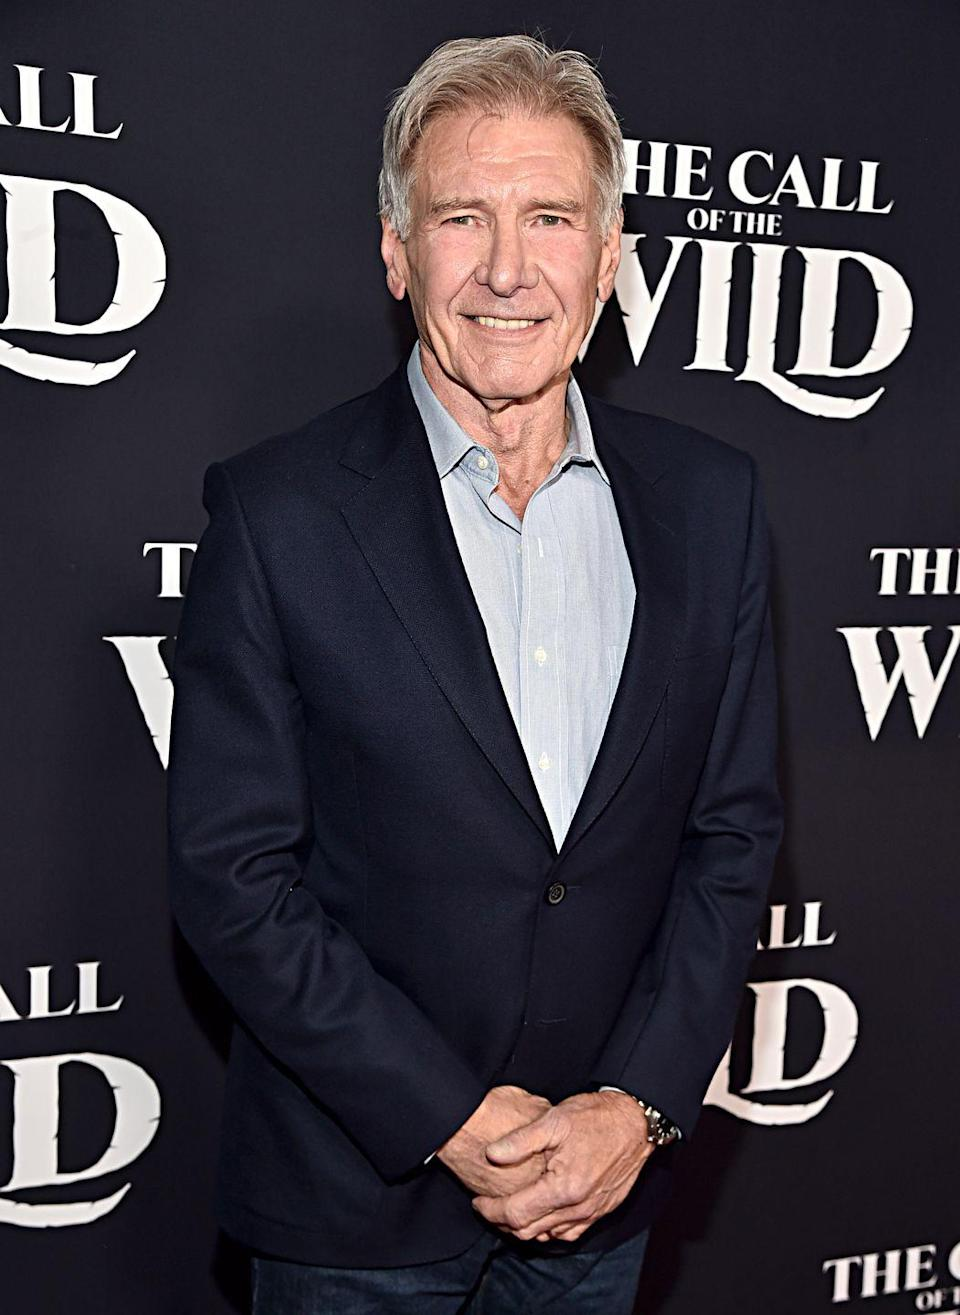 """<p>Harrison Ford wasn't keen on acting until later in his college years. Before that, the <em>Indiana Jones </em>star was a philosophy major and <a href=""""https://www.sigmanu.org/prospective-members/notable-sigma-nu-members"""" rel=""""nofollow noopener"""" target=""""_blank"""" data-ylk=""""slk:joined Sigma Nu"""" class=""""link rapid-noclick-resp"""">joined Sigma Nu </a>when he arrived on campus at Ripon College.</p>"""